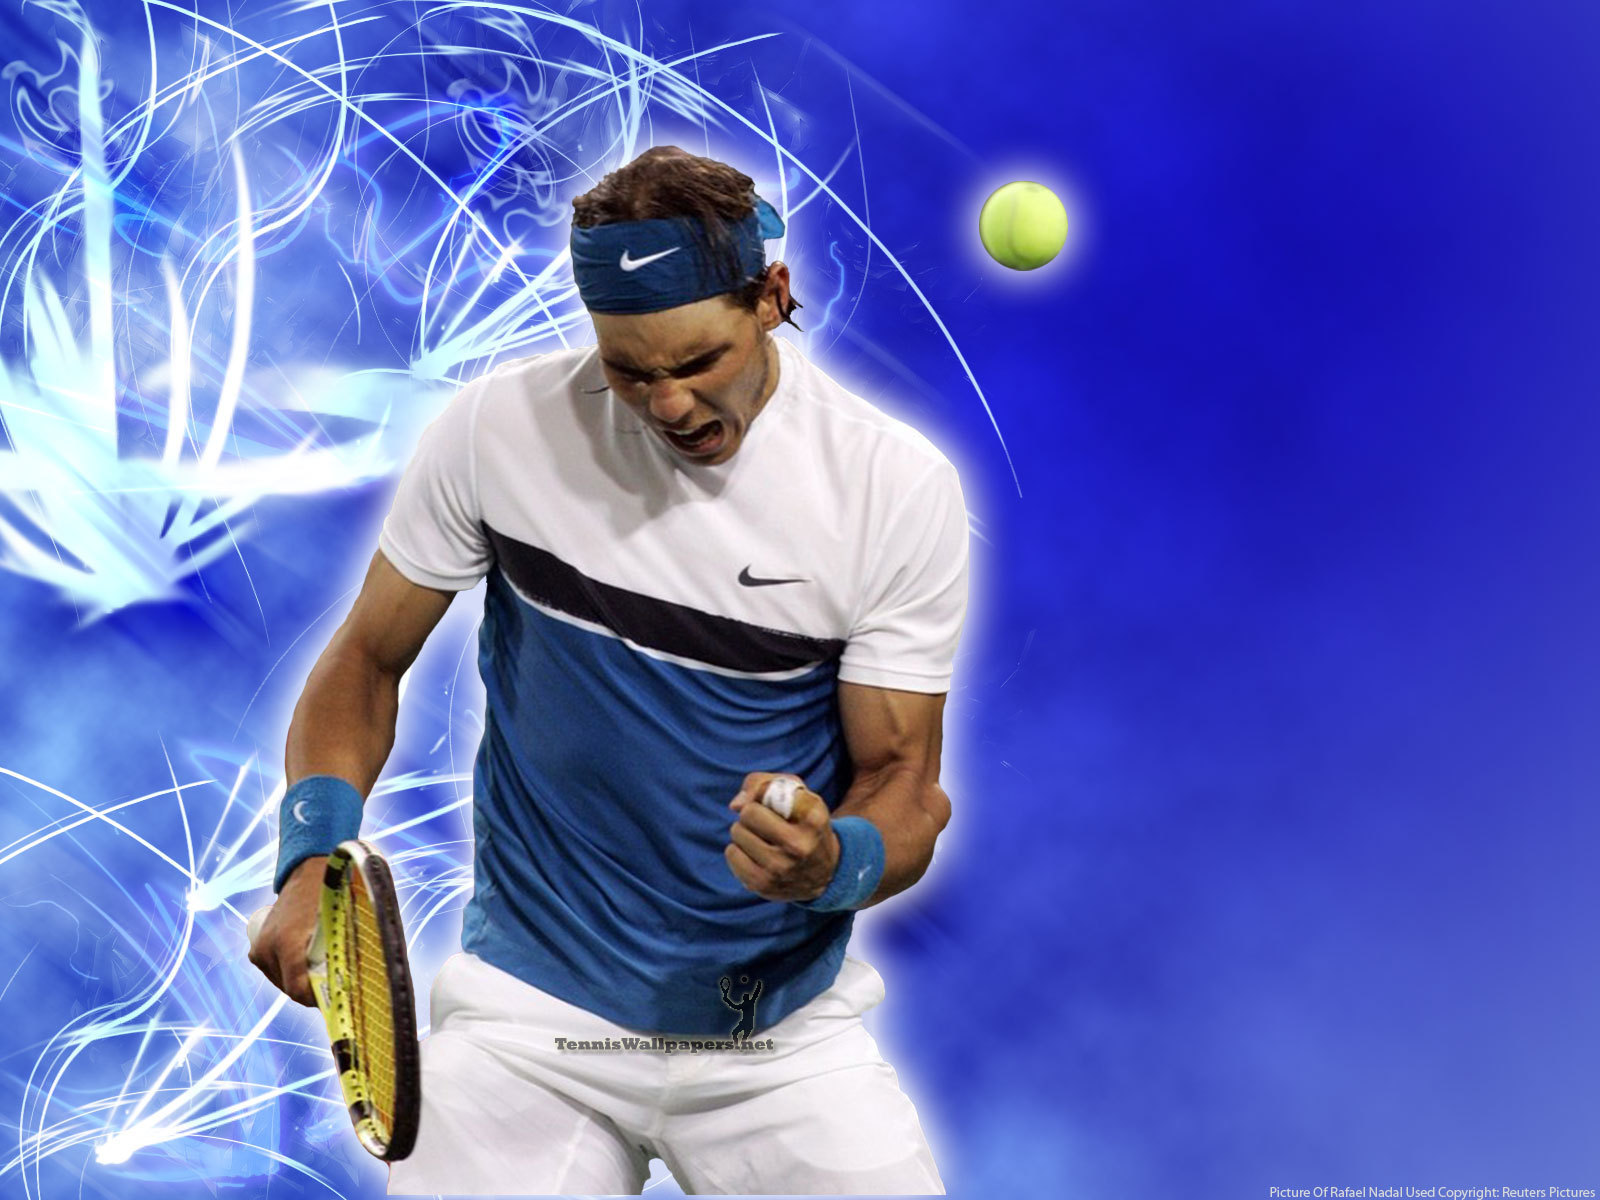 rafael nadal wallpapers | sportwallpapers